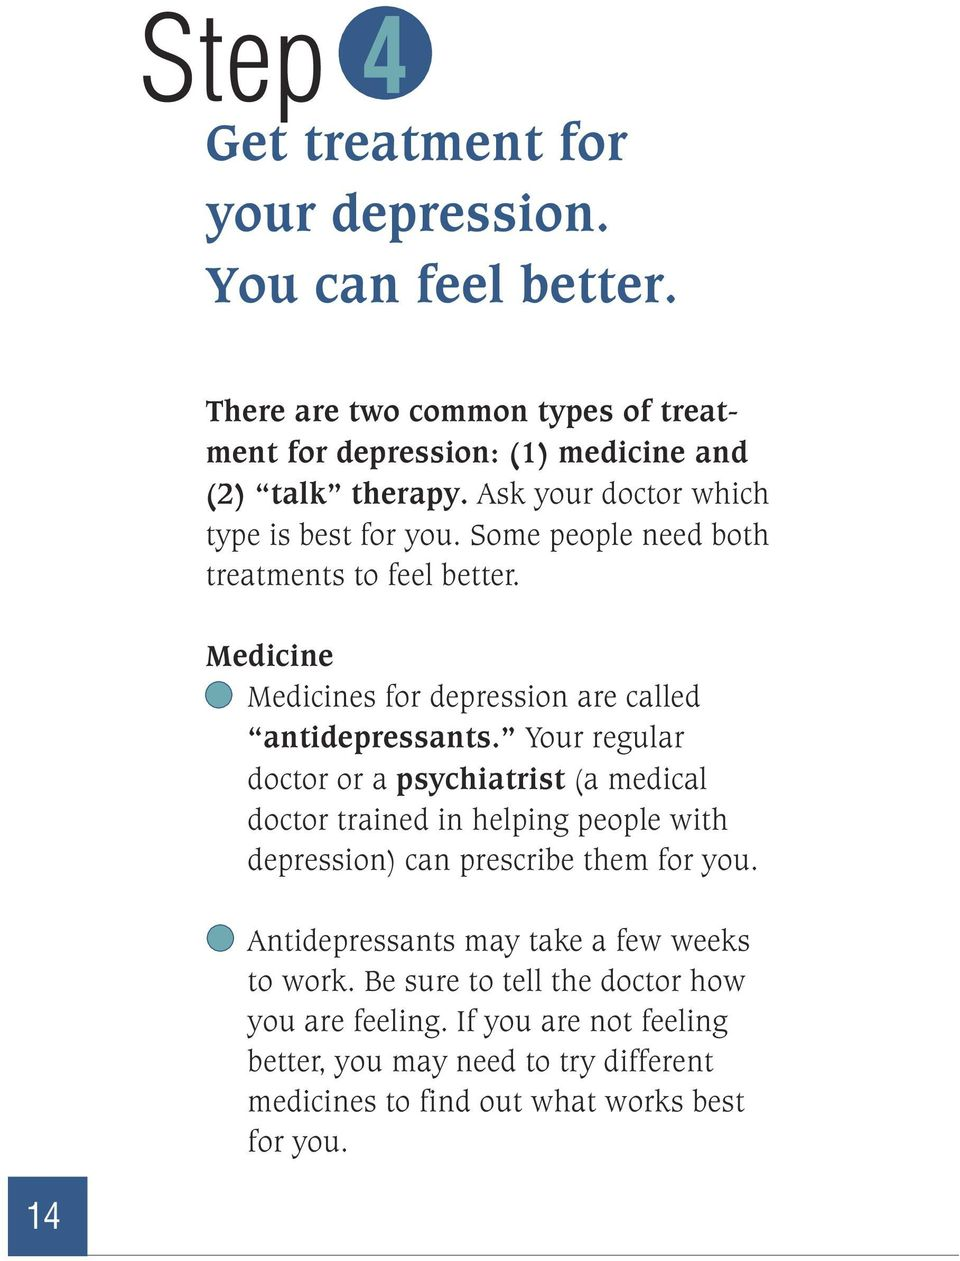 Your regular doctor or a psychiatrist (a medical doctor trained in helping people with depression) can prescribe them for you.